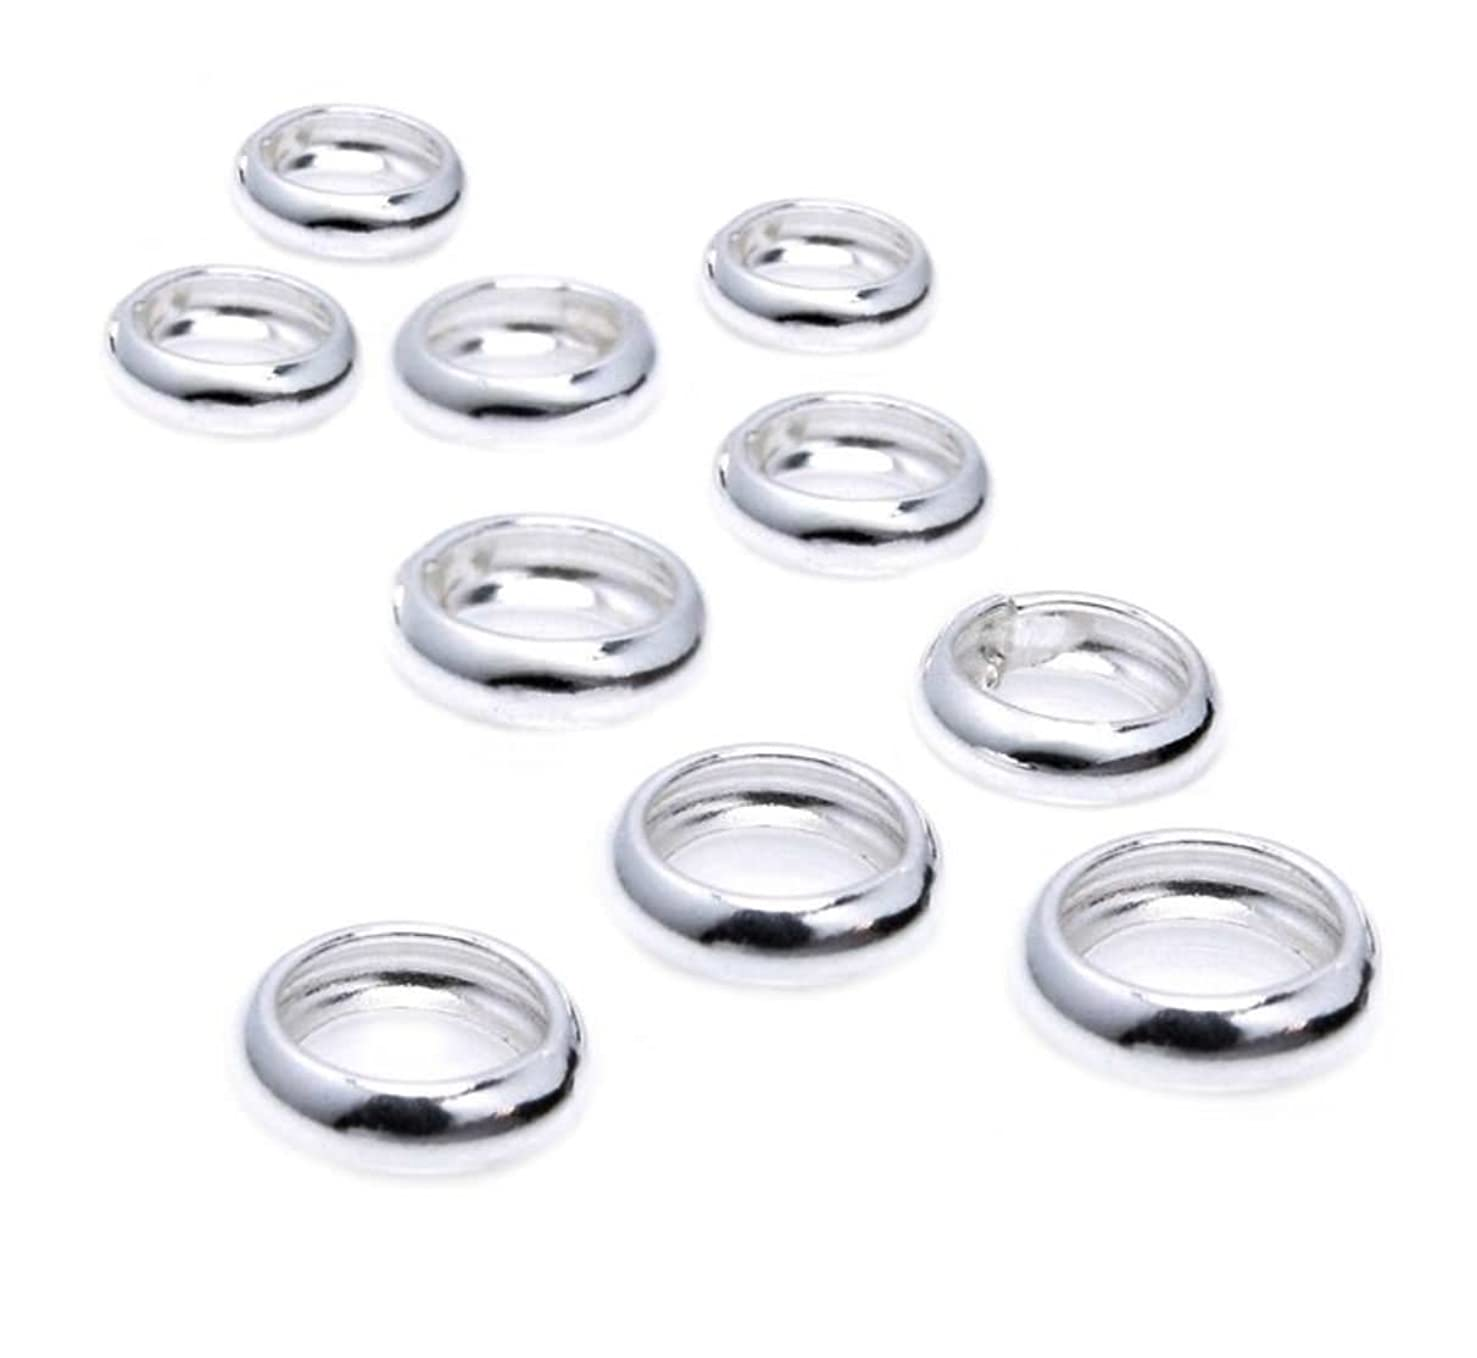 50pcs Sterling Silver 5mm Round Ring Spacer Beads (Large hole ~3.0mm) for Jewelry Craft Making Findings SS45-BB